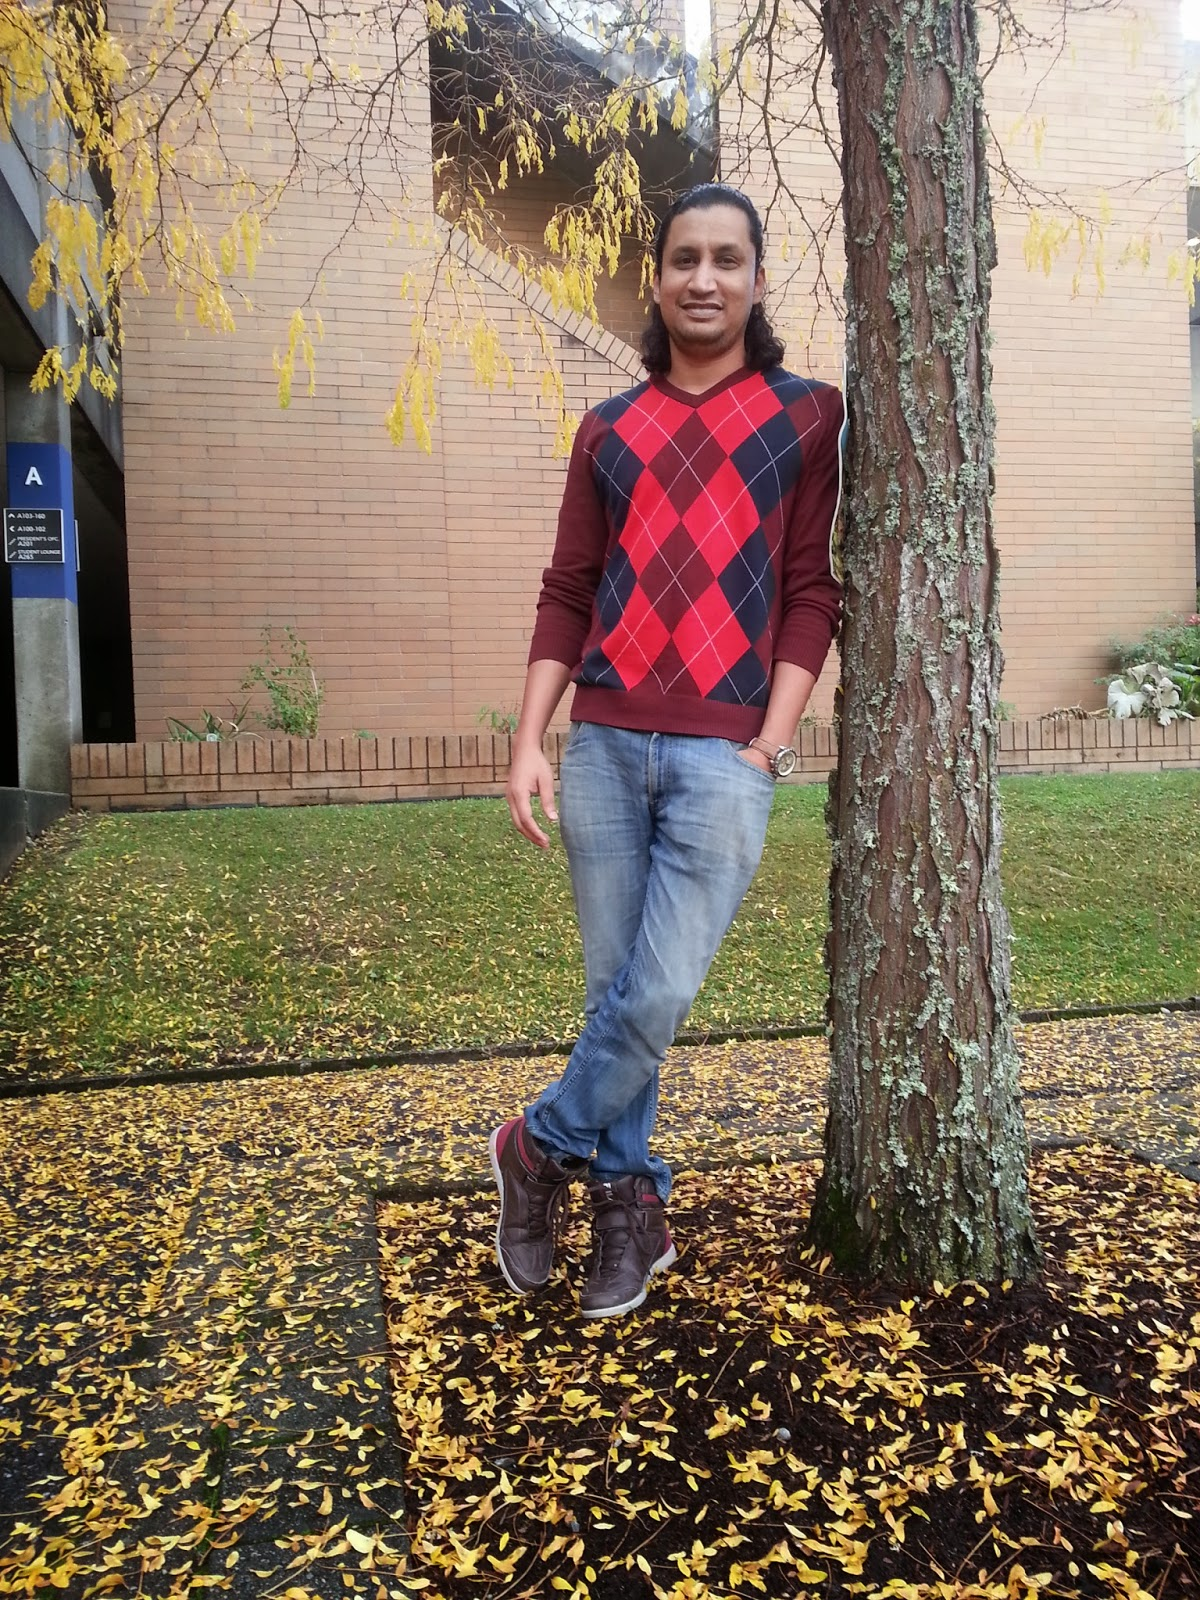 Guy wearing argyle sweater and brown boots, Indian Male fashion blogger, Indian couple fashion blogger, Argyle Sweater for men, Male fashion blogger